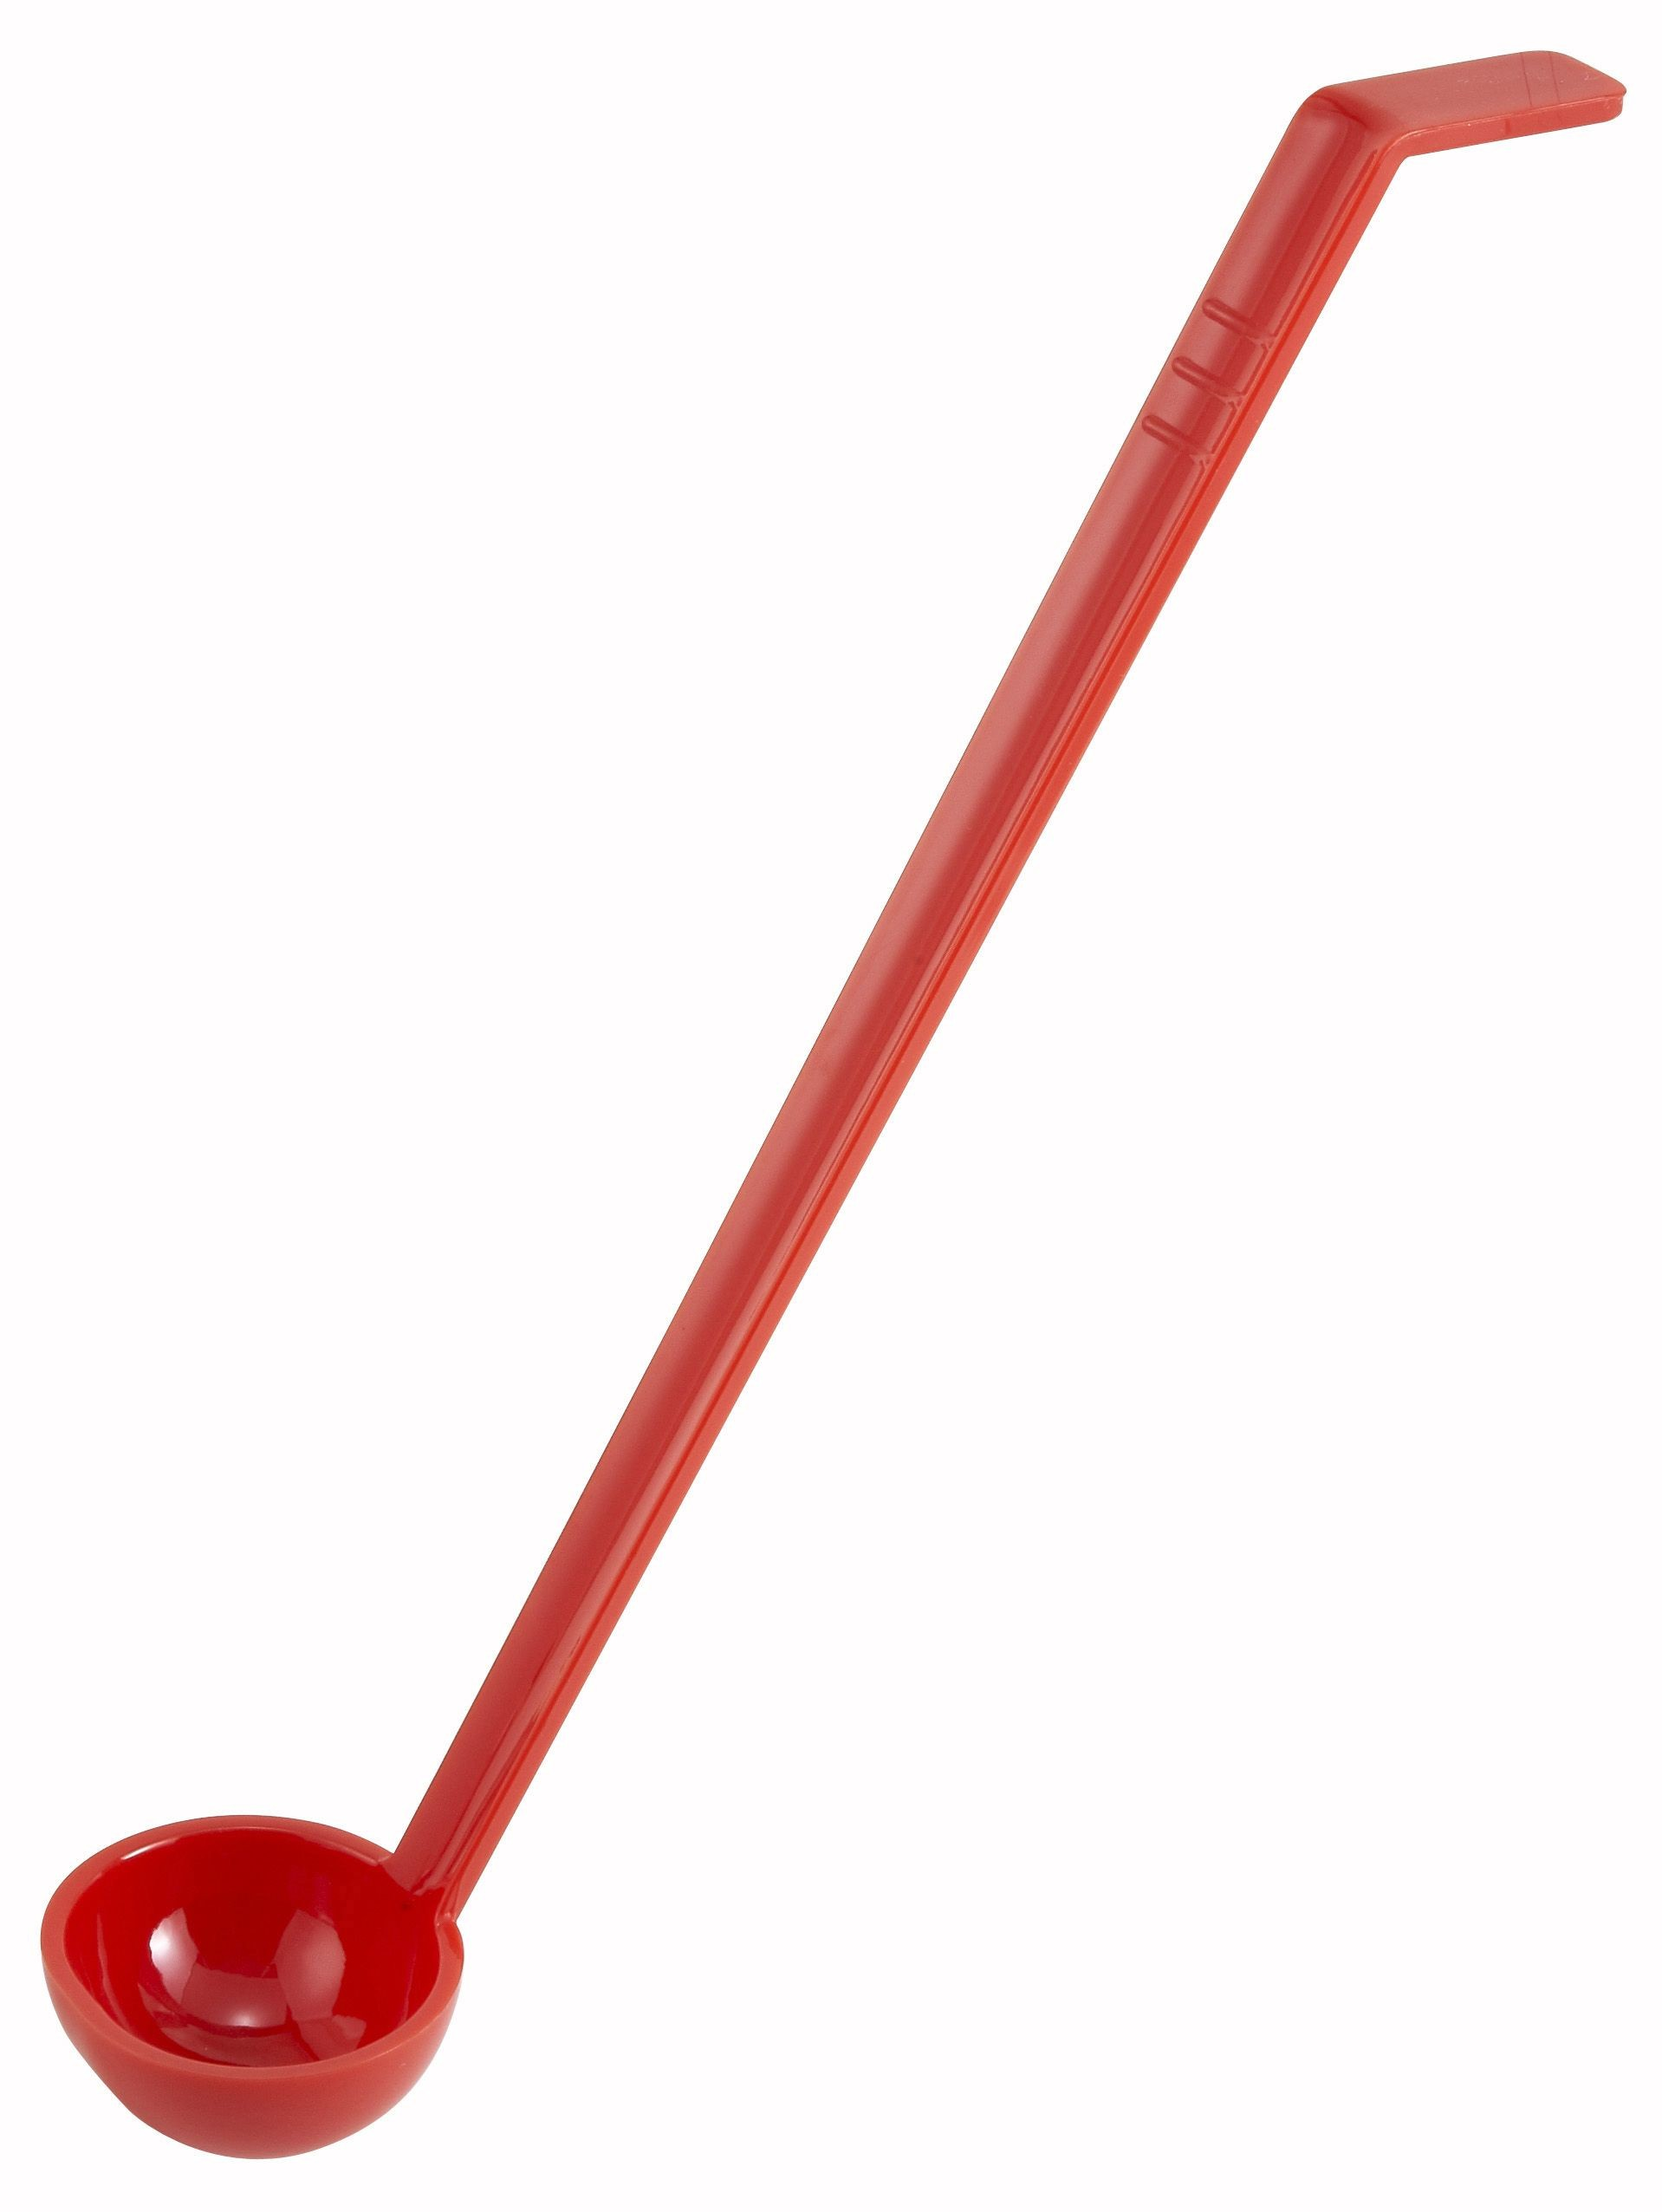 Red Polycarbonate One-Piece 1-Oz. Ladle - 13